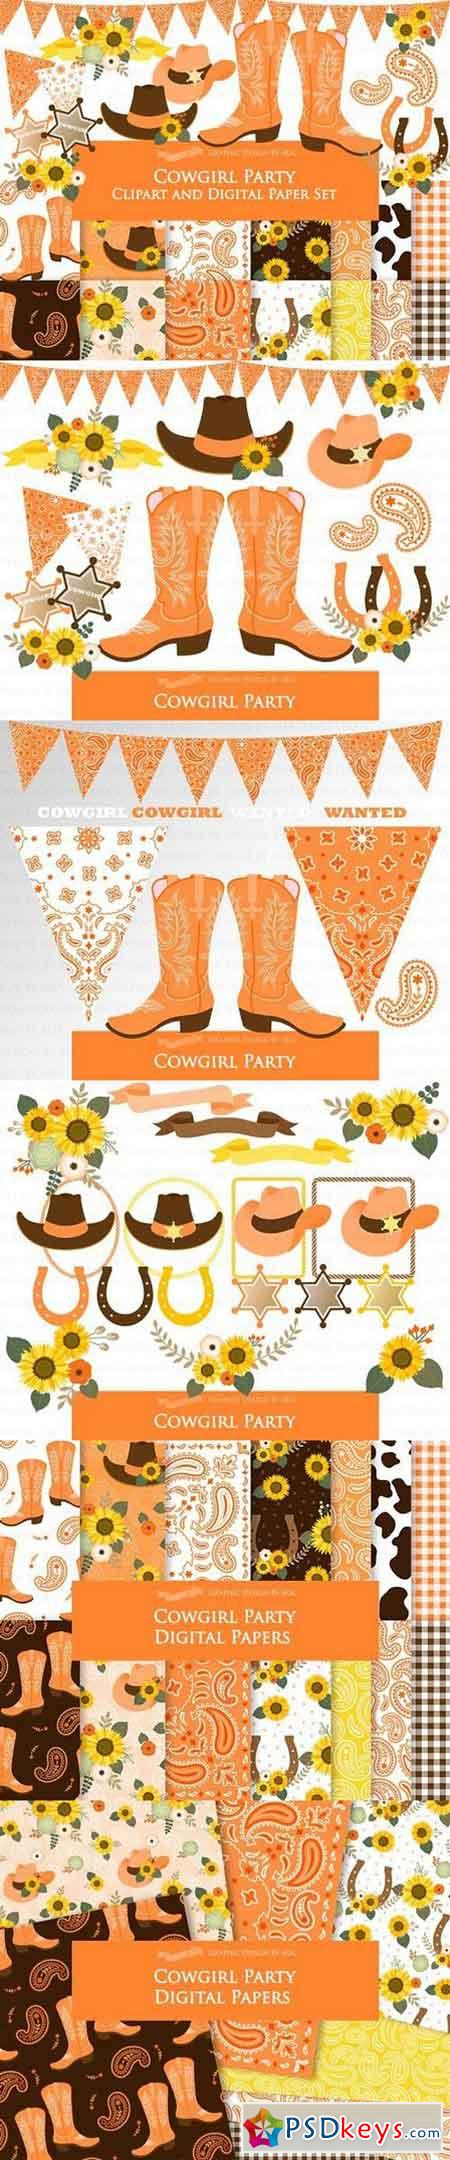 Cowgirl Party Clipart+Pattern 1398859